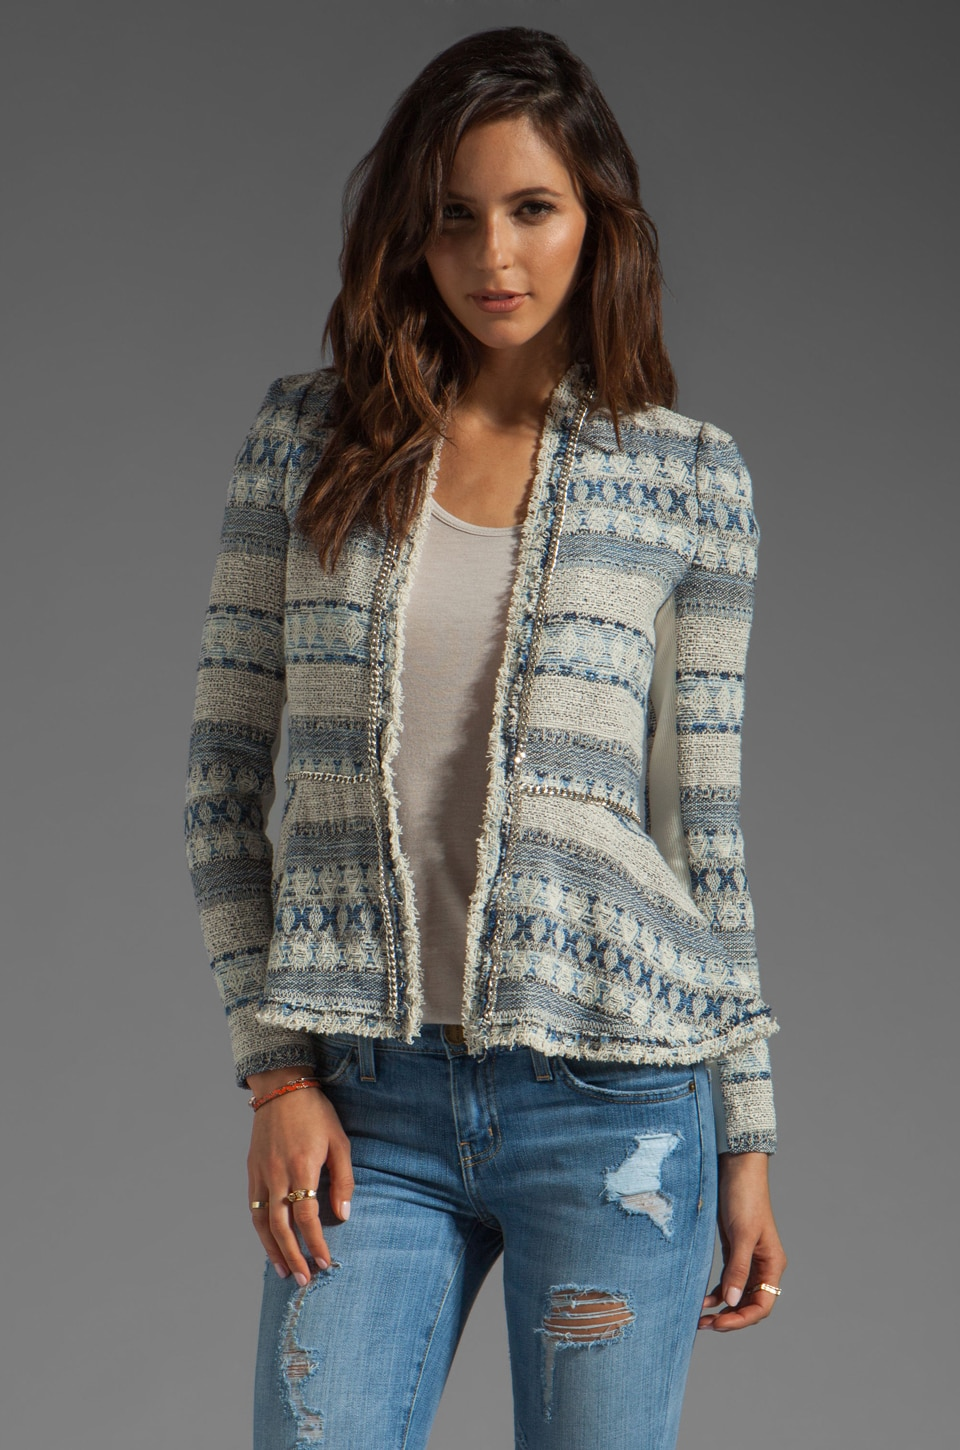 Rebecca Taylor Tweed & Chain Jacket in Blue